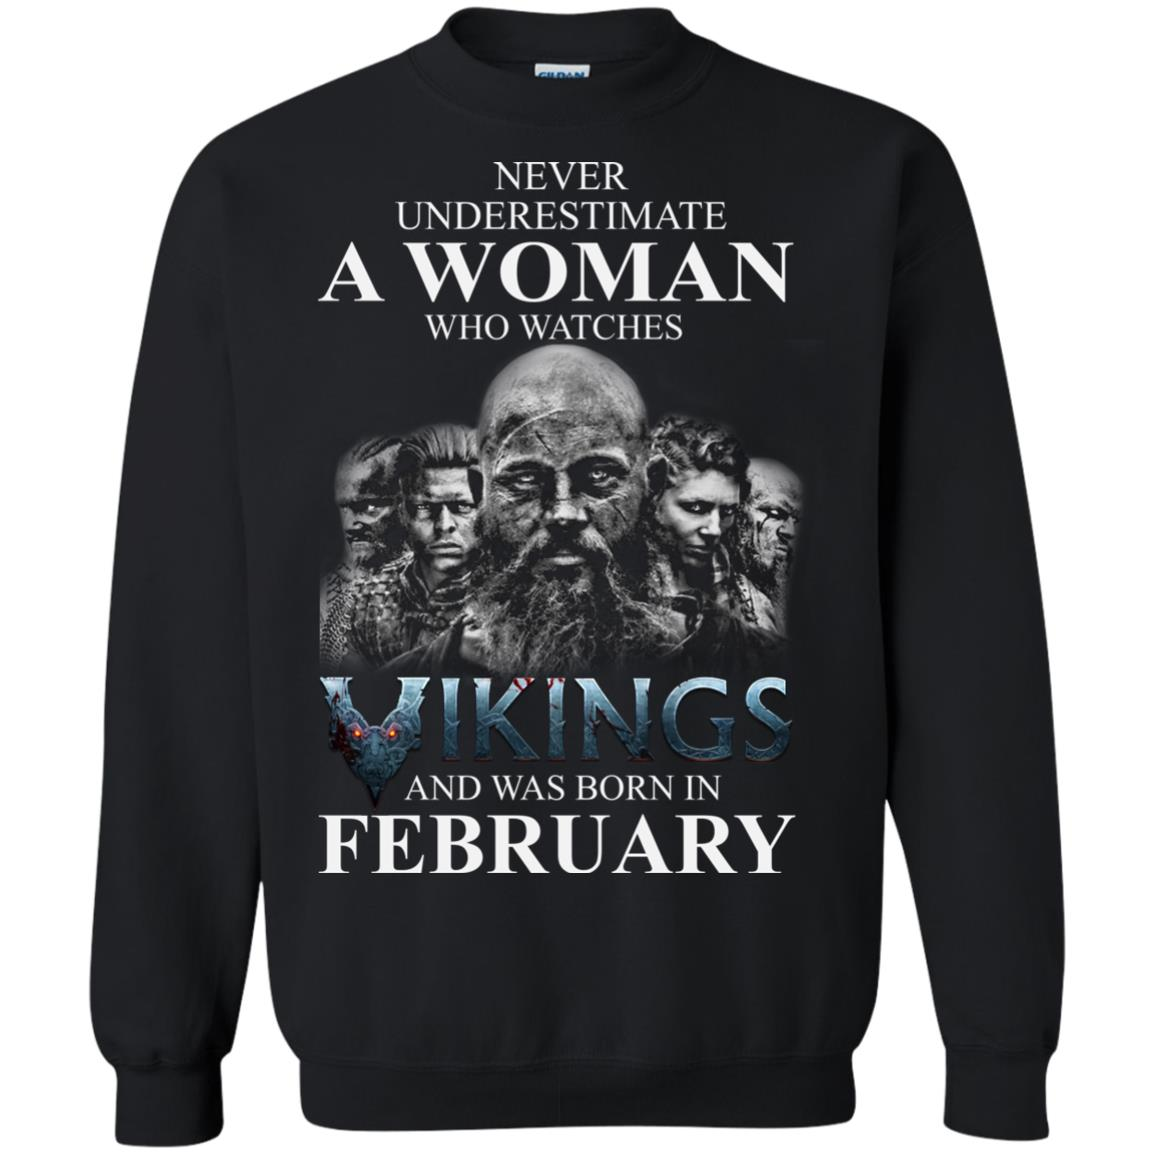 image 1345 - Never Underestimate A woman who watches Vikings and was born in February shirt